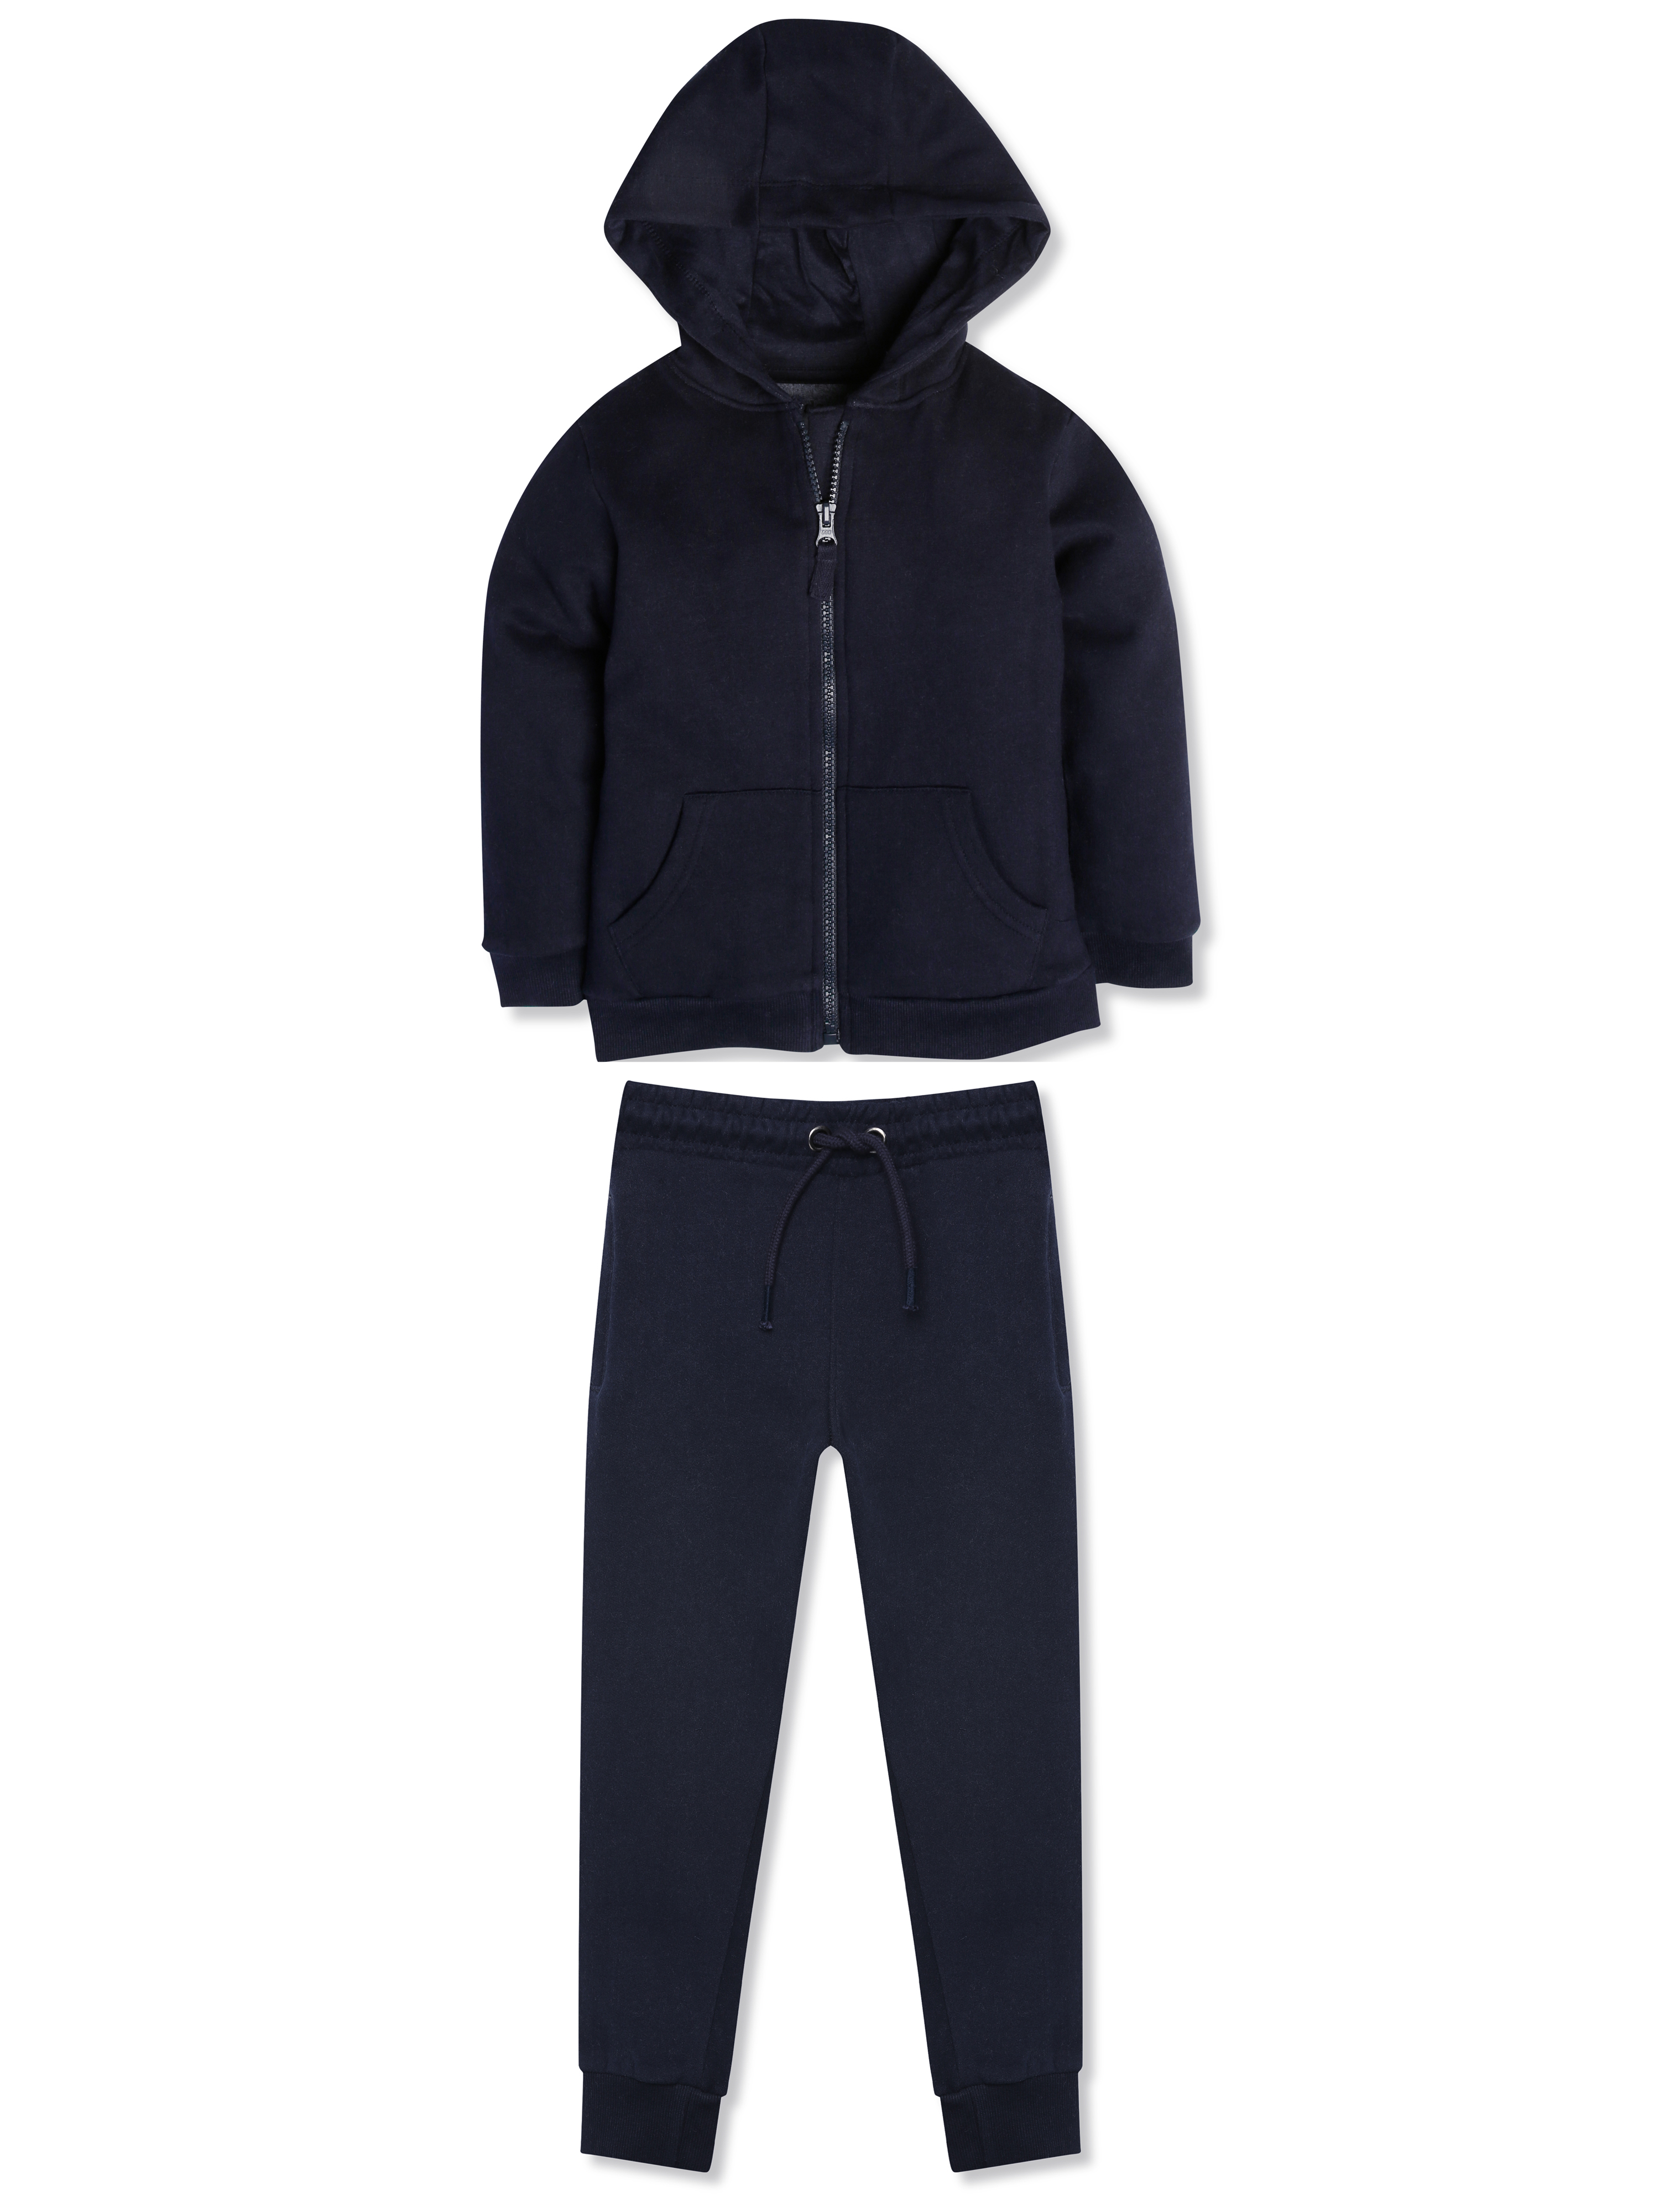 Navy Hoodie and Jogger Set (3-12yrs)